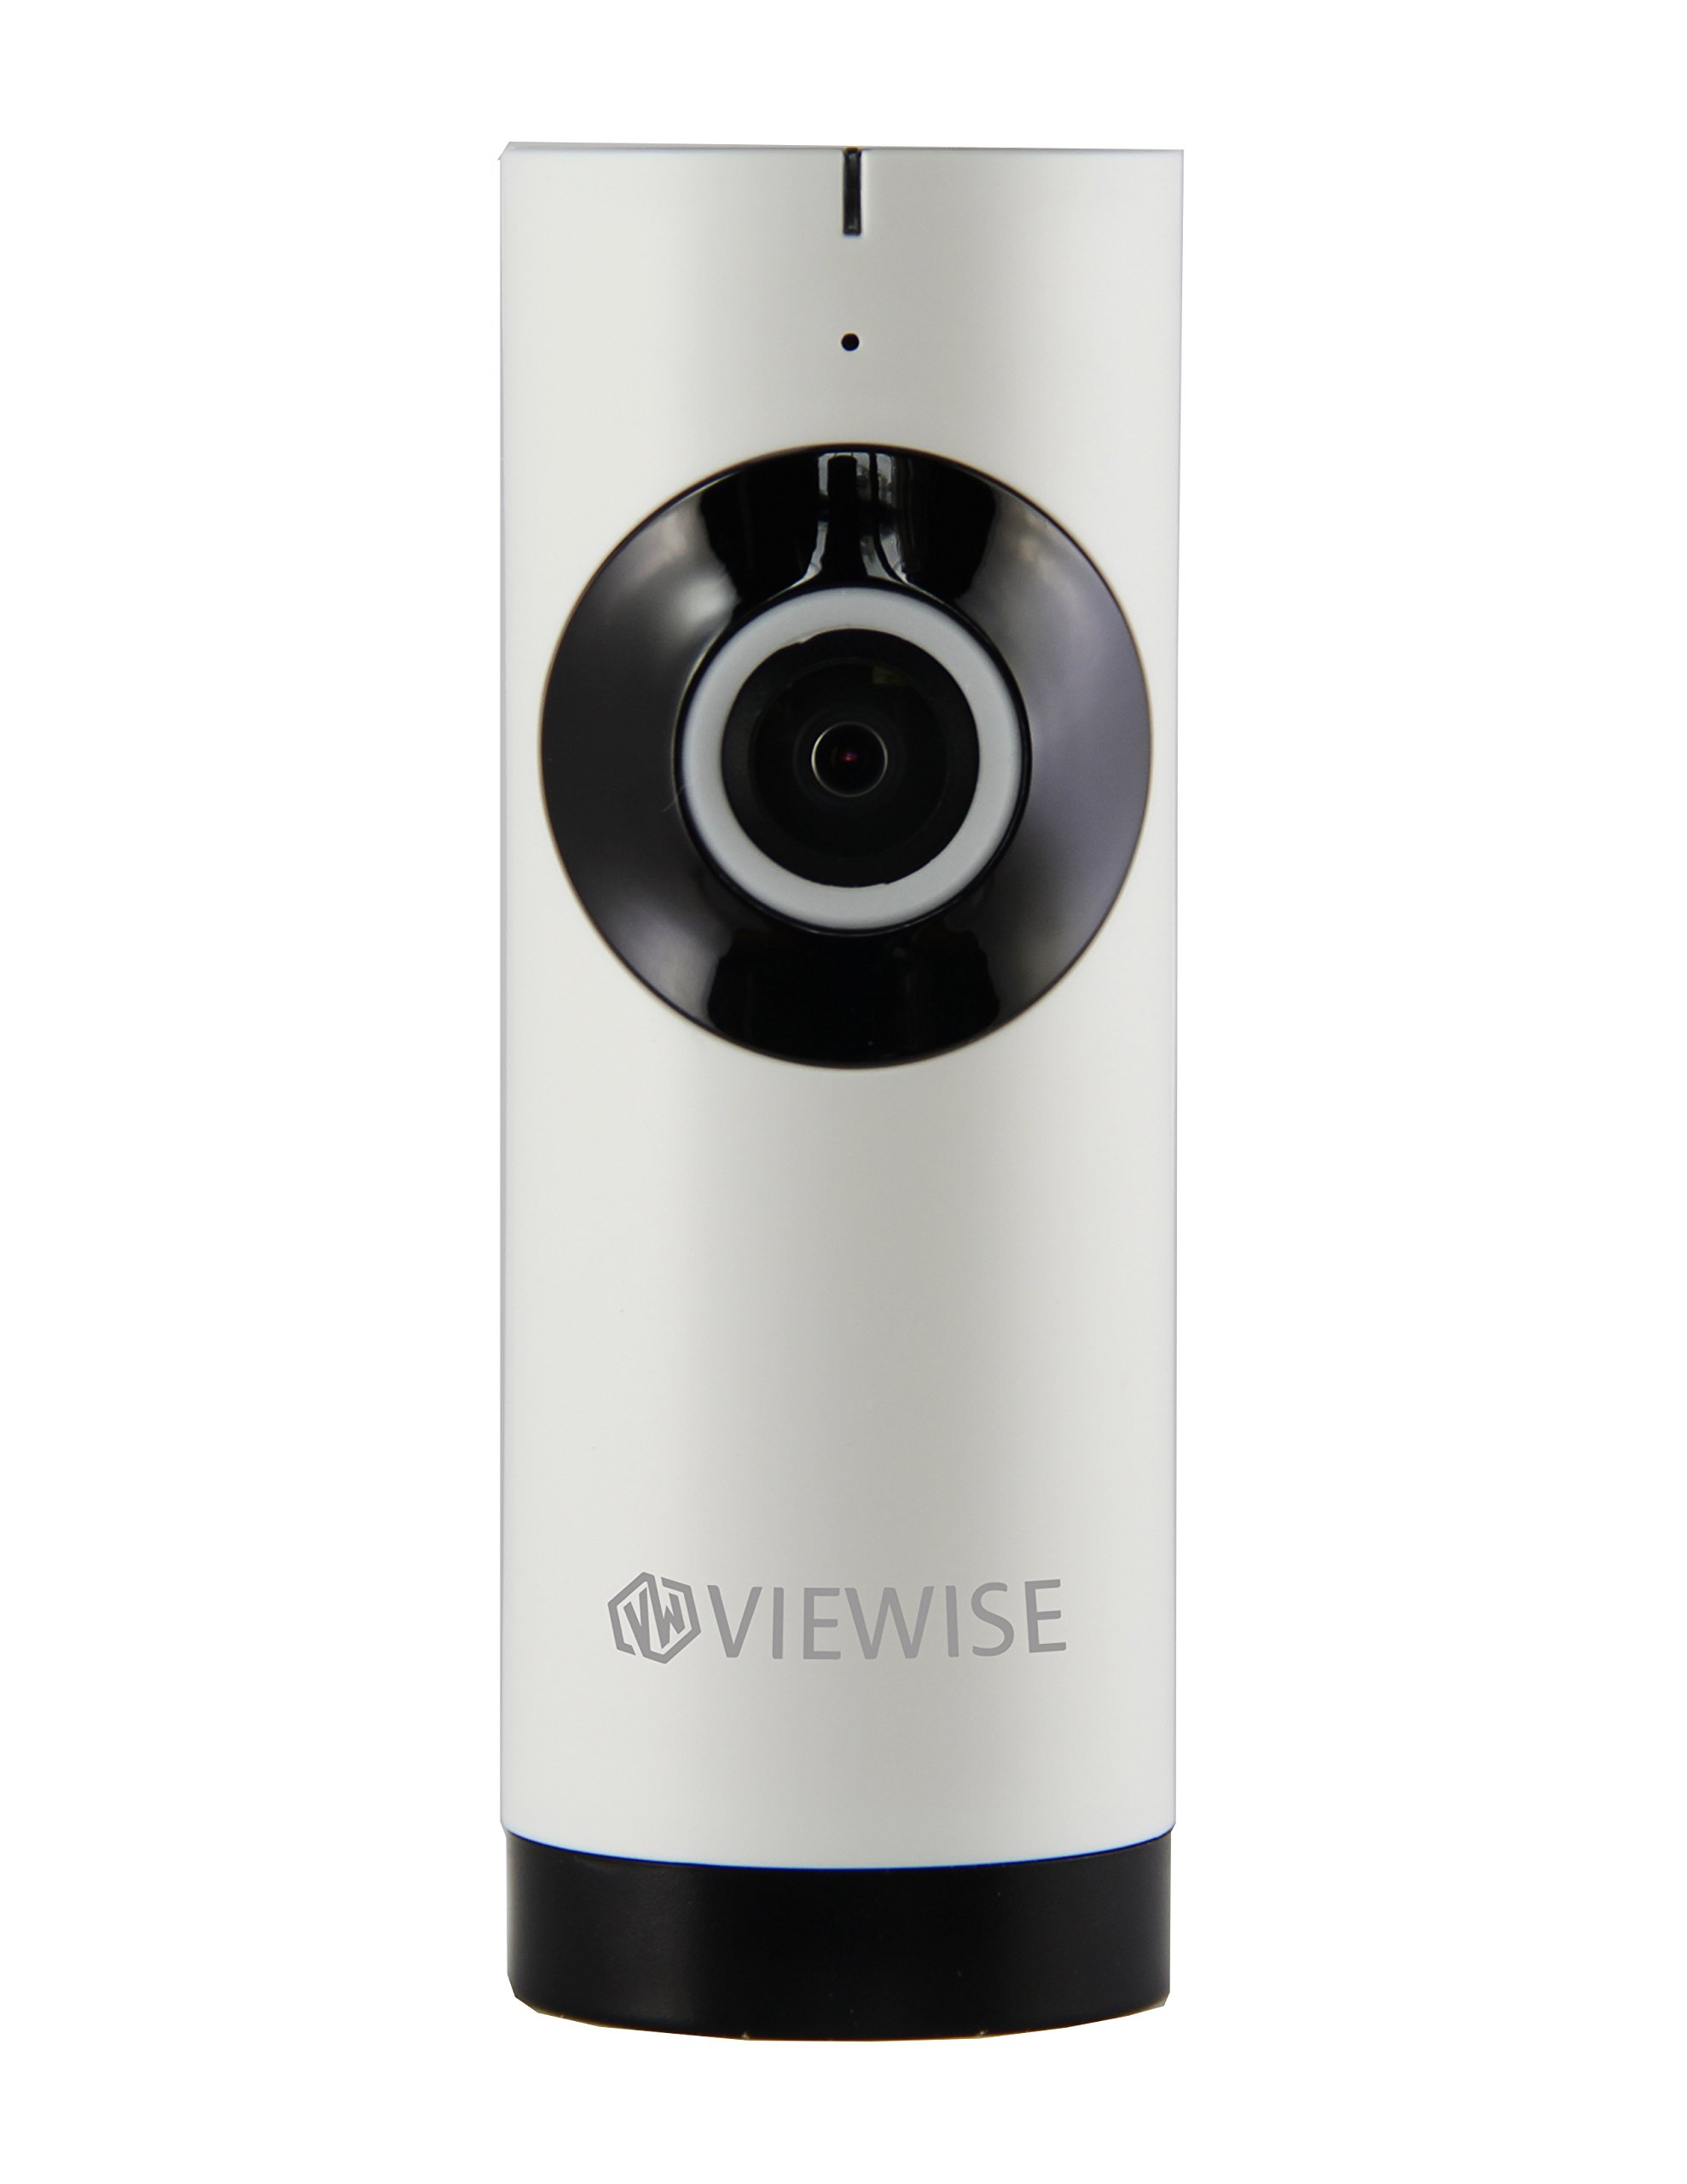 VIEWISE 720P HD Wireless Camera 185 degree Fisheye Network Monitoring IP Camera WiFi Baby Pet Monitor Security Camera Night Vision Two-Way Audio Motion Alert Household Camera